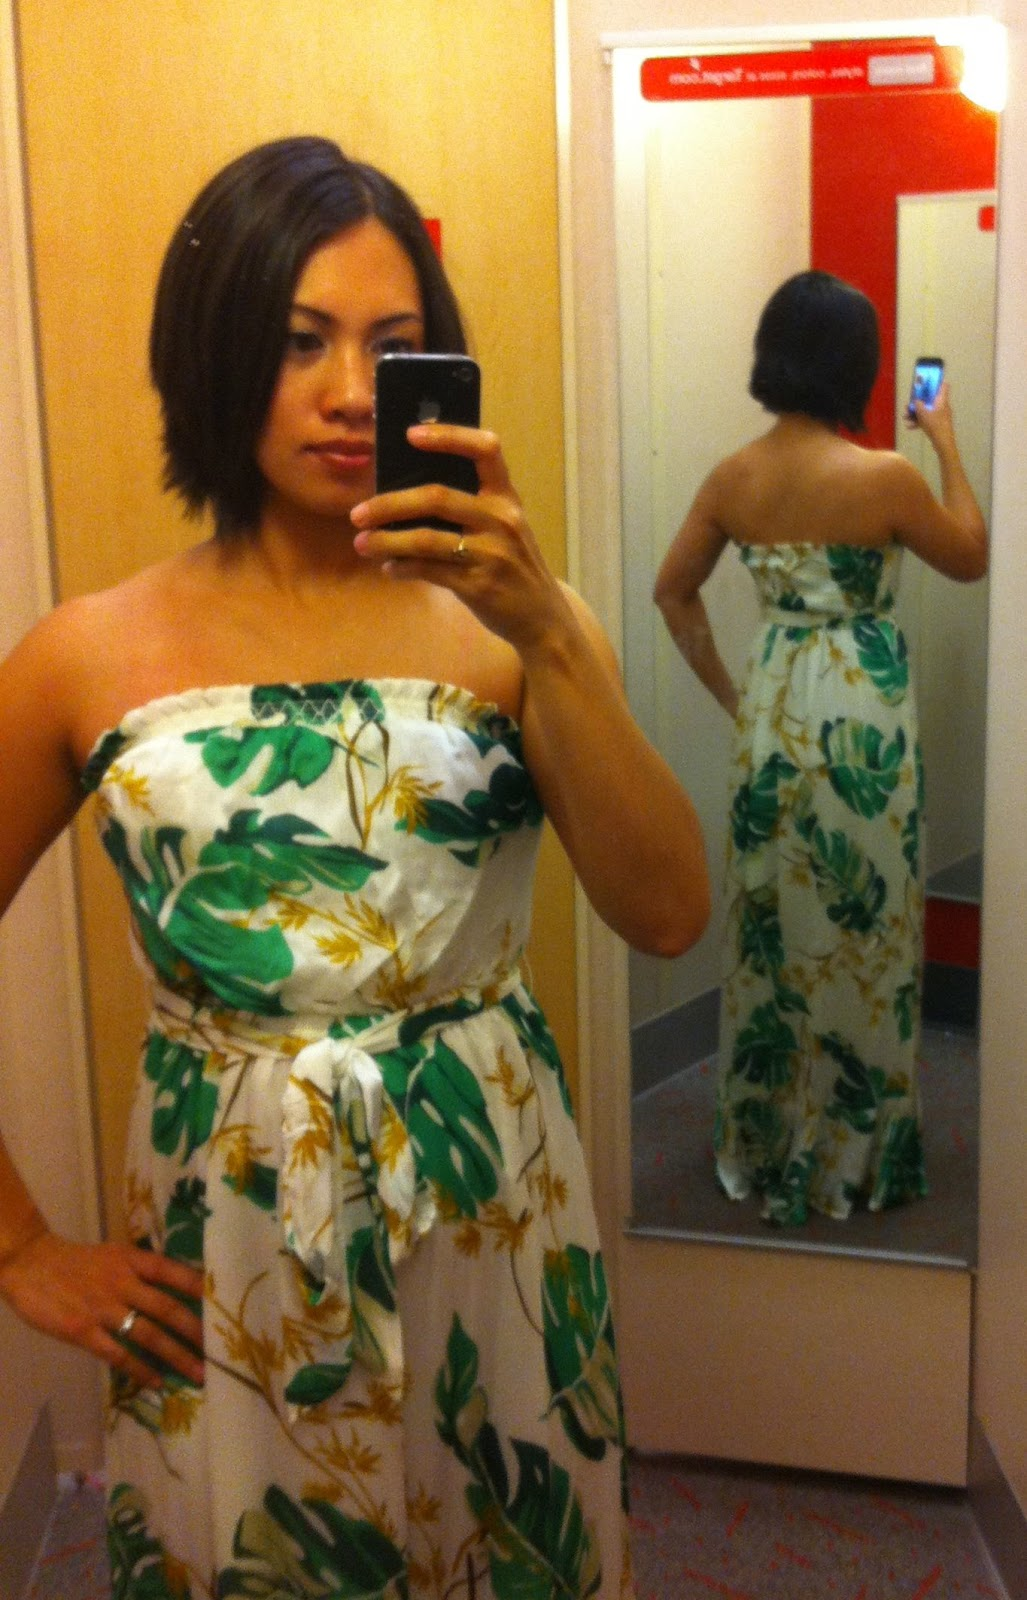 Item: Strapless Maxi Dress by The Webster for Target